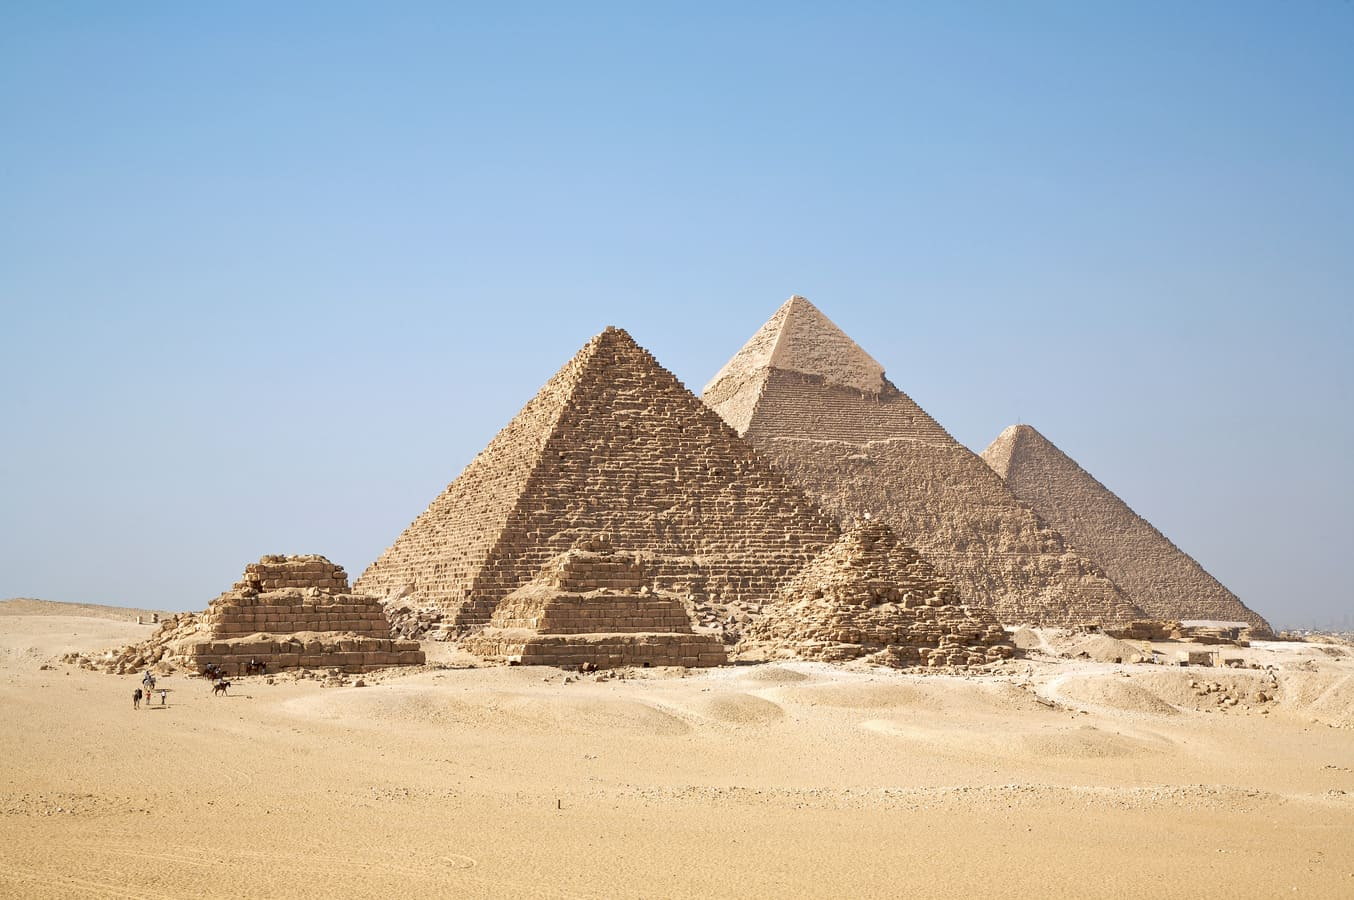 Egypt Tours Best Egypt Tours & Holidays – 100% Tailor-Made Tours to Egypt.Daily Departure Guarantee. Book Now!